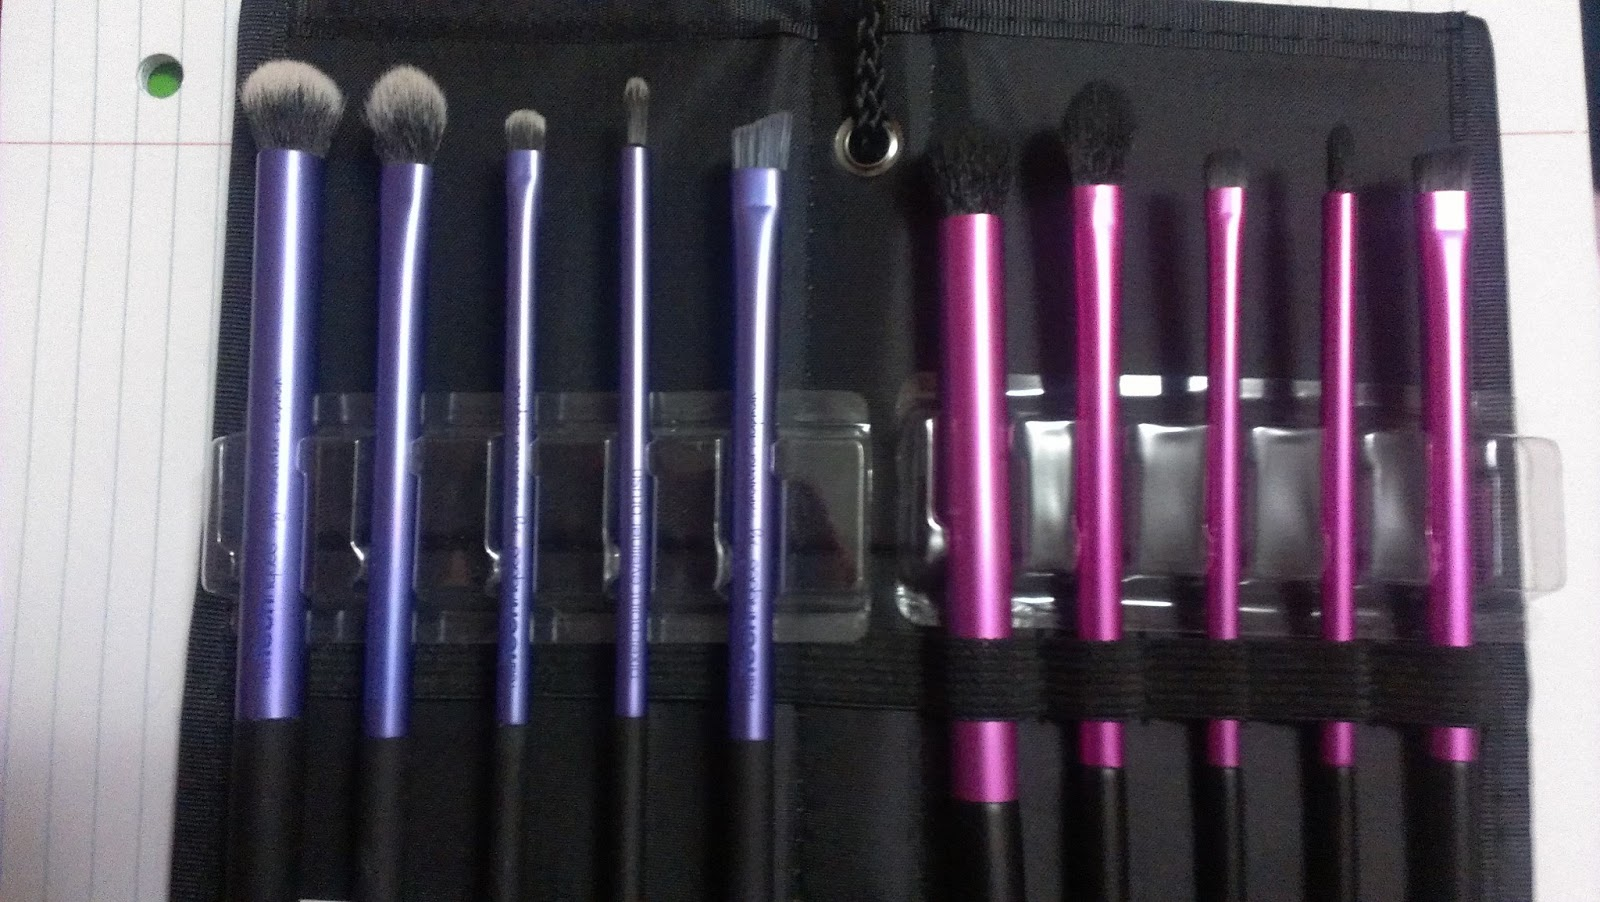 The Aditi Blog: Real Techniques Starter Set Dupe from Superstore - Review!